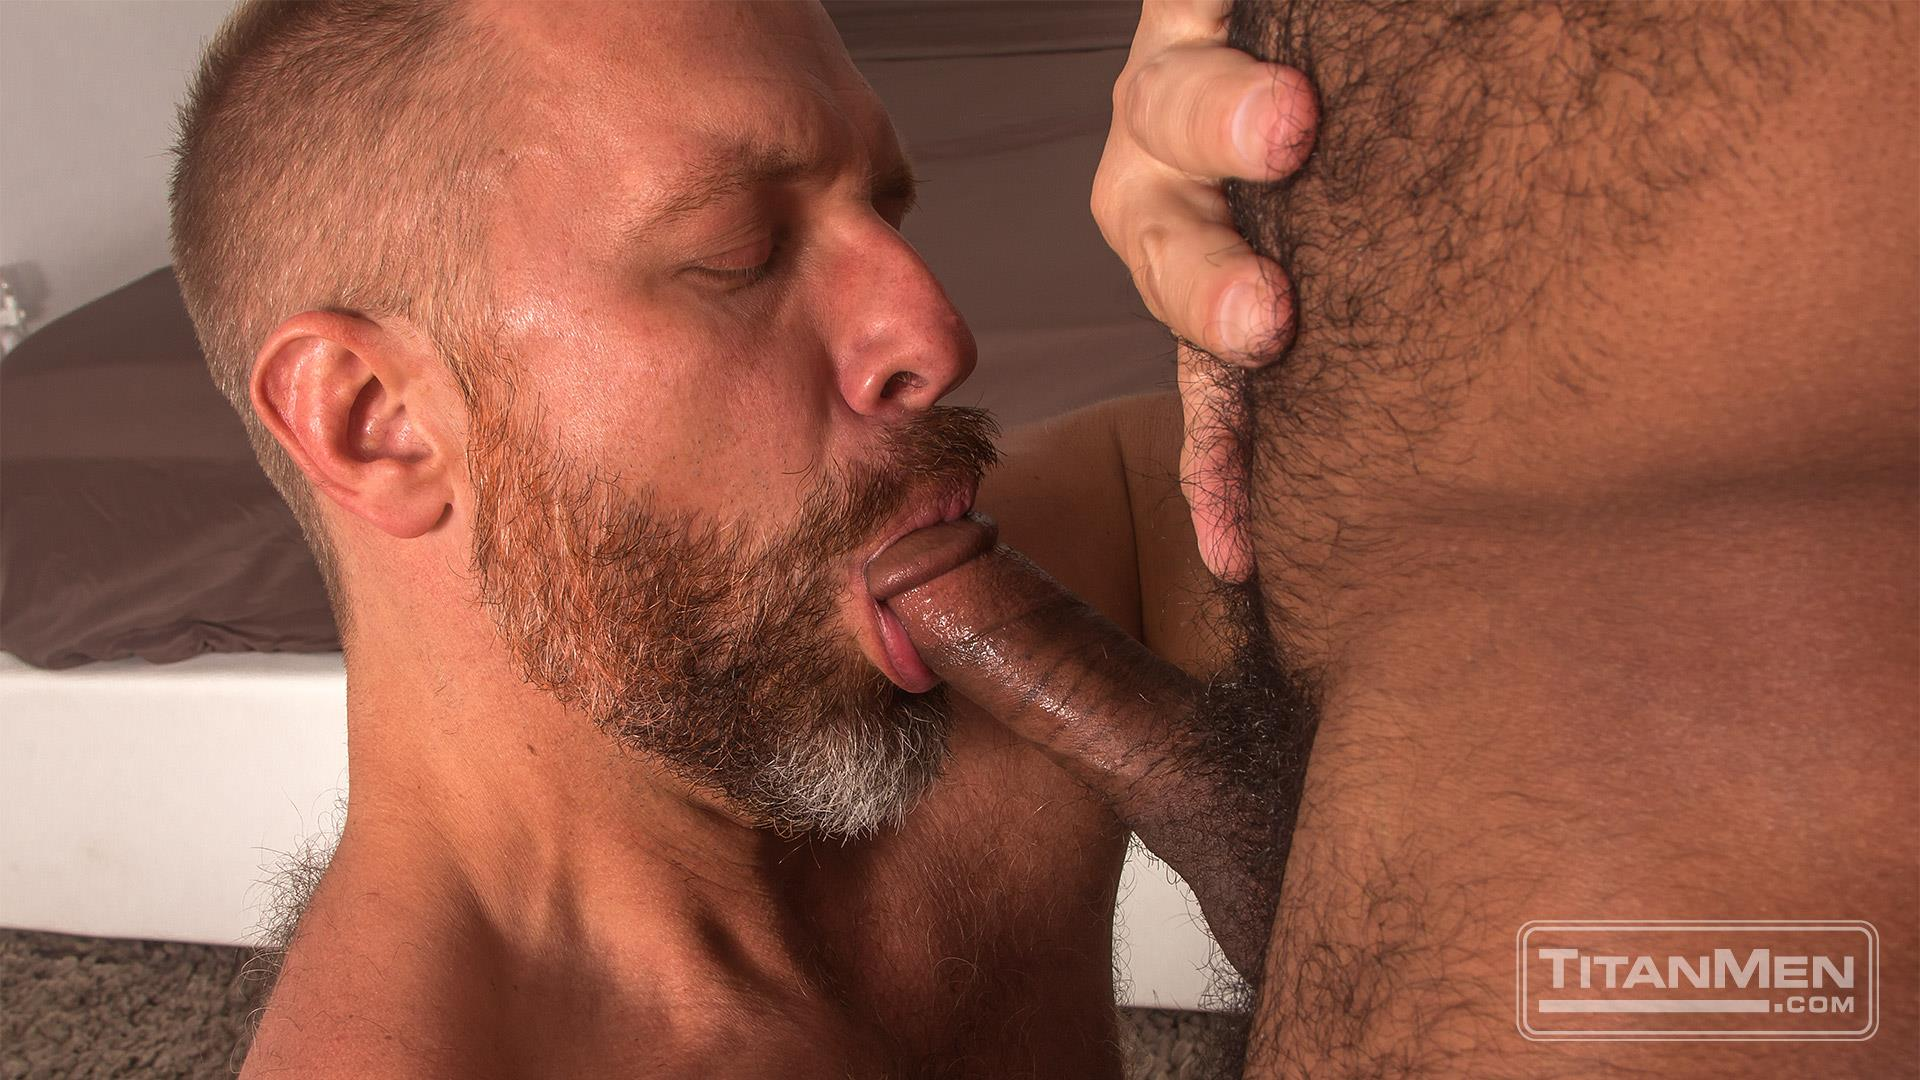 Titan-Men-Dirk-Caber-and-Daymin-Voss-Hairy-Muscle-Daddy-and-Big-Black-Dick-Fucking-09 Hairy Muscle Daddy Dirk Caber Flip Fucking With Hairy Black Muscle Hunk Daymin Voss